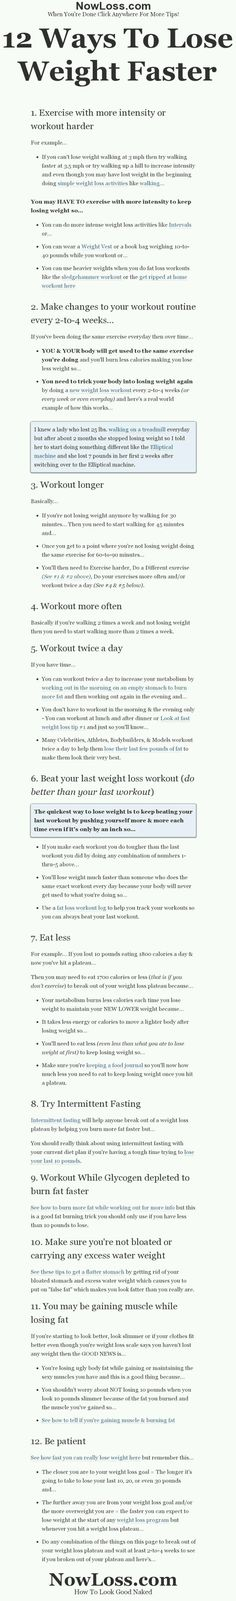 12 Ways to Lose Weight Faster...